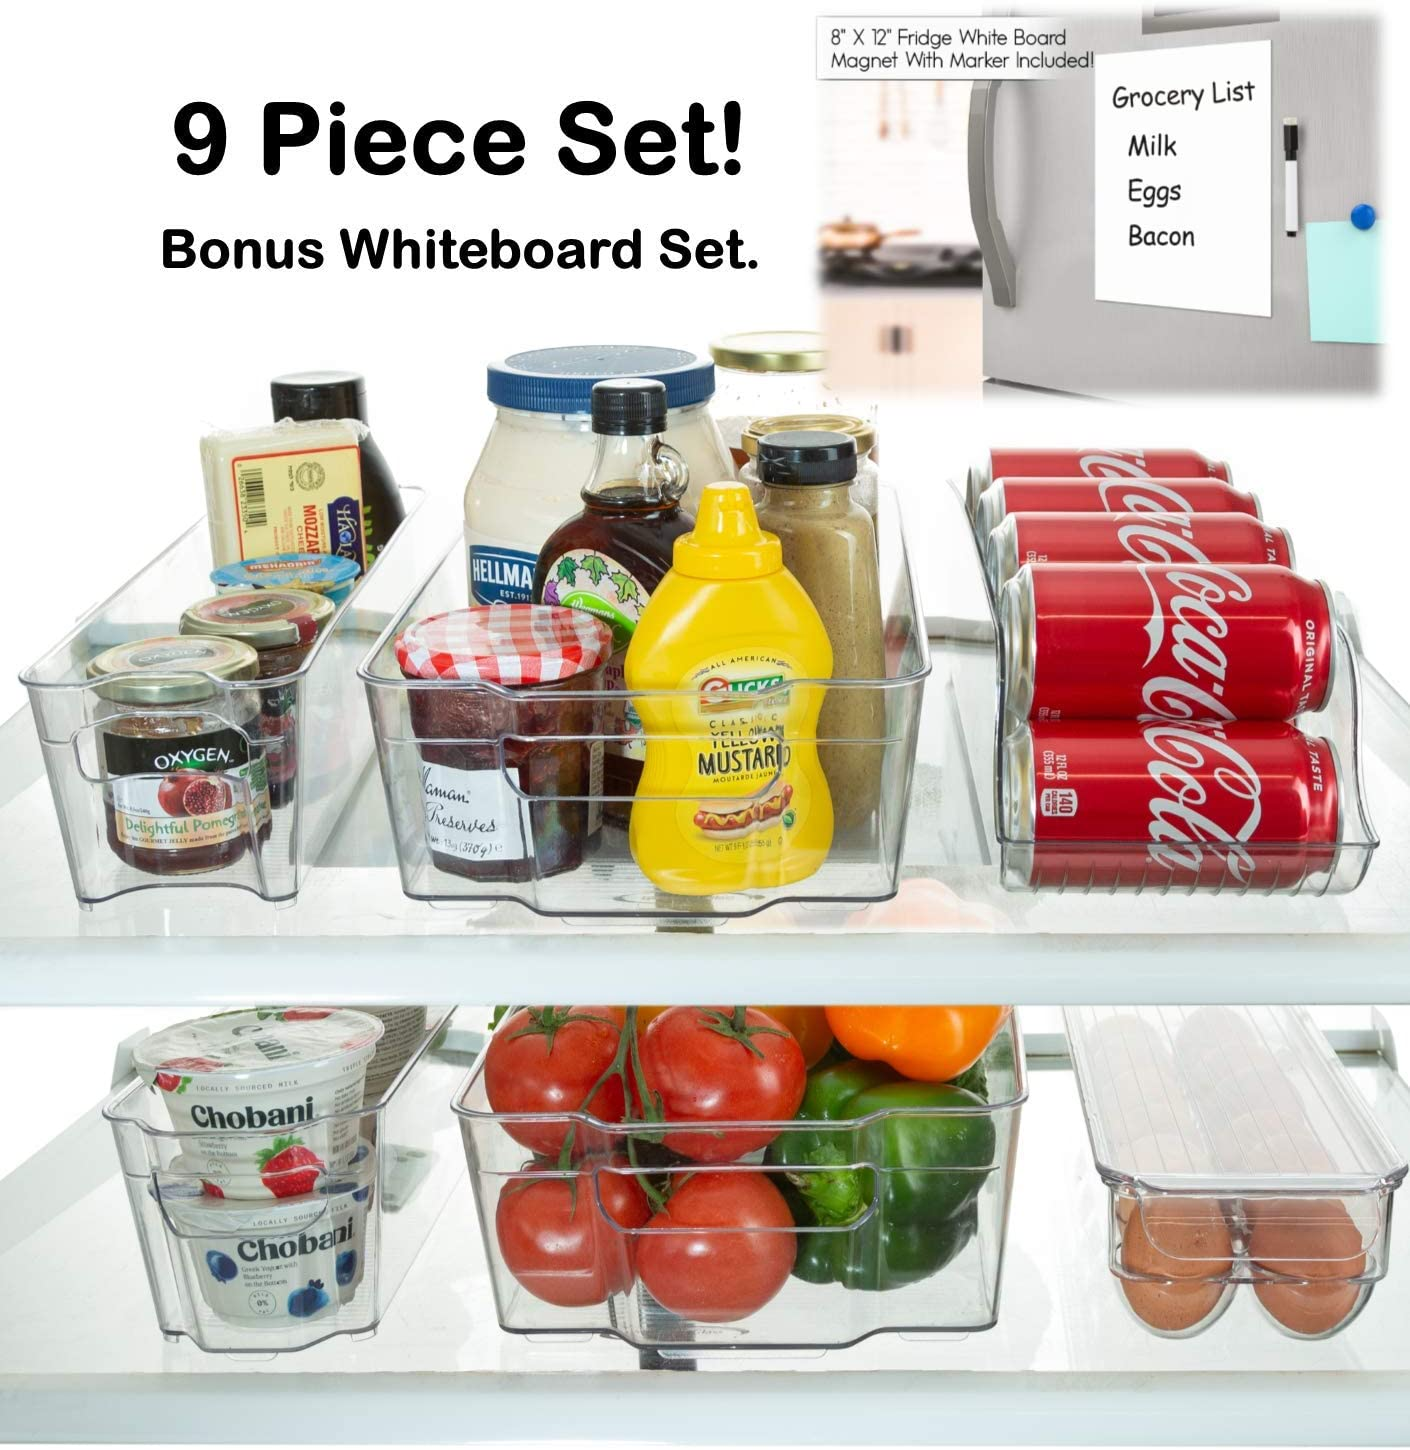 Etienne Alair Stackable Storage Refrigerator Organizer Bins for Fridge, Freezer, Pantry and Kitchen. Includes Bonus Magnetic Dry-Erase Whiteboard & Markers Set, Clear